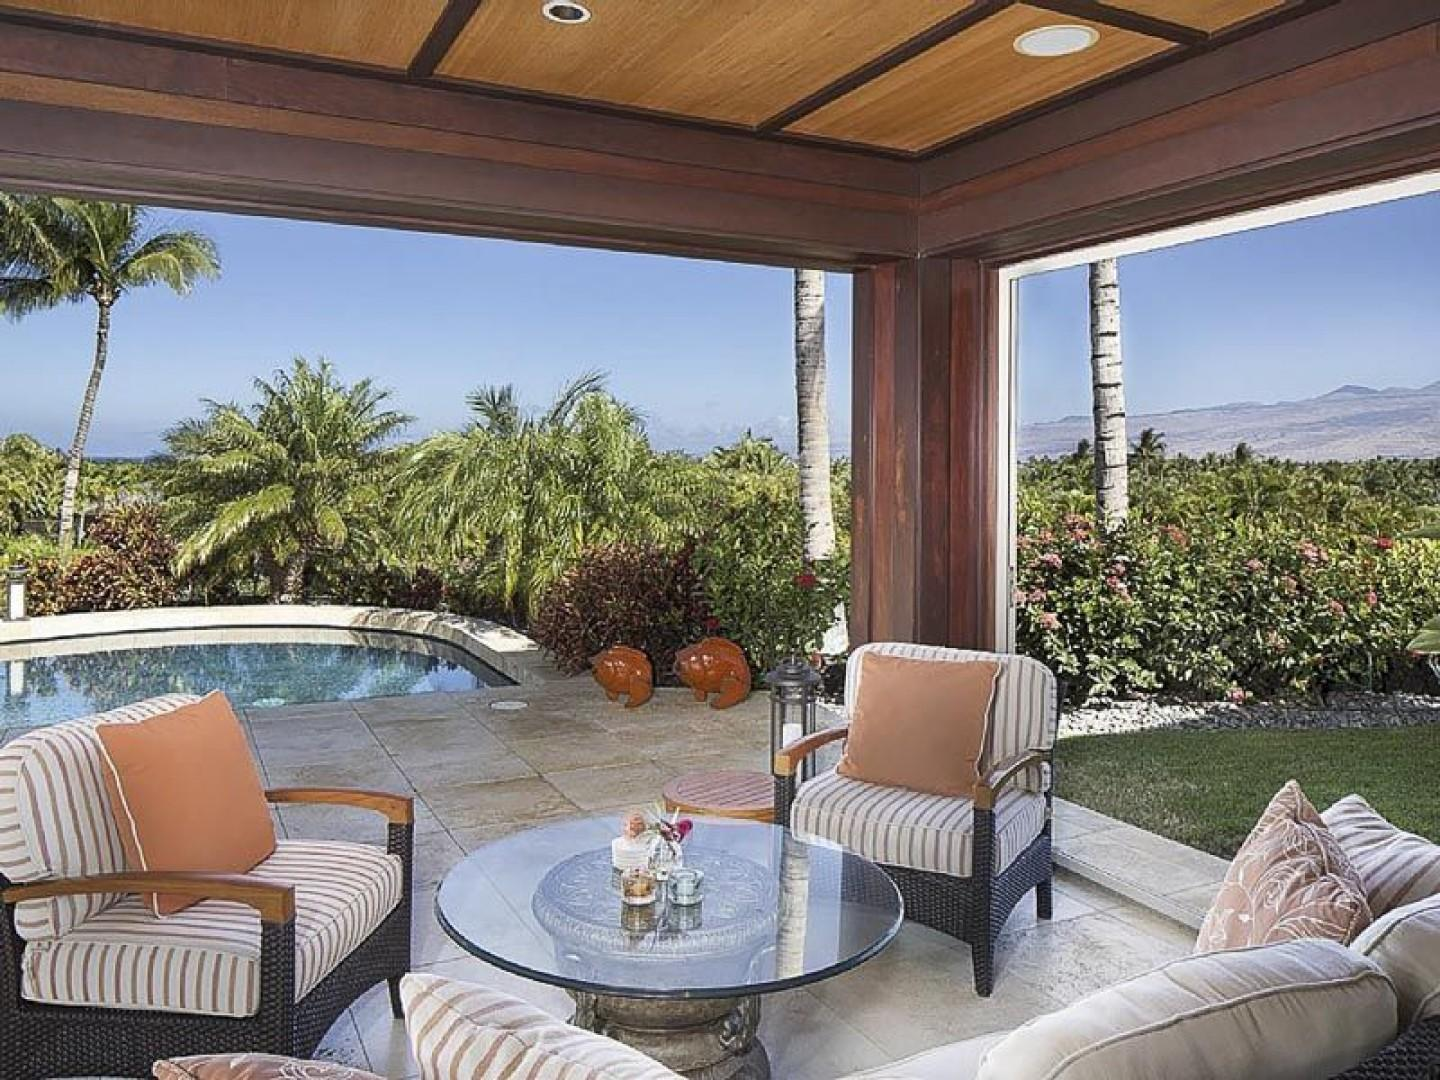 Outdoor Cabana by The Pool